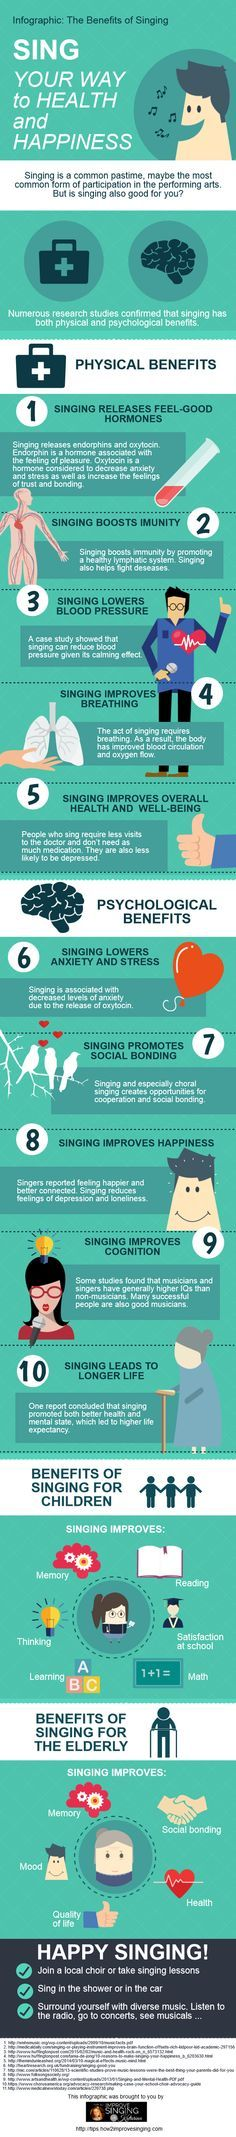 """Click here to read more about the benefits of singing: <a href=""""http://tips.how2improvesinging.com/benefits-of-singing/"""" rel=""""nofollow"""" target=""""_blank"""">tips.how2improves...</a> ."""